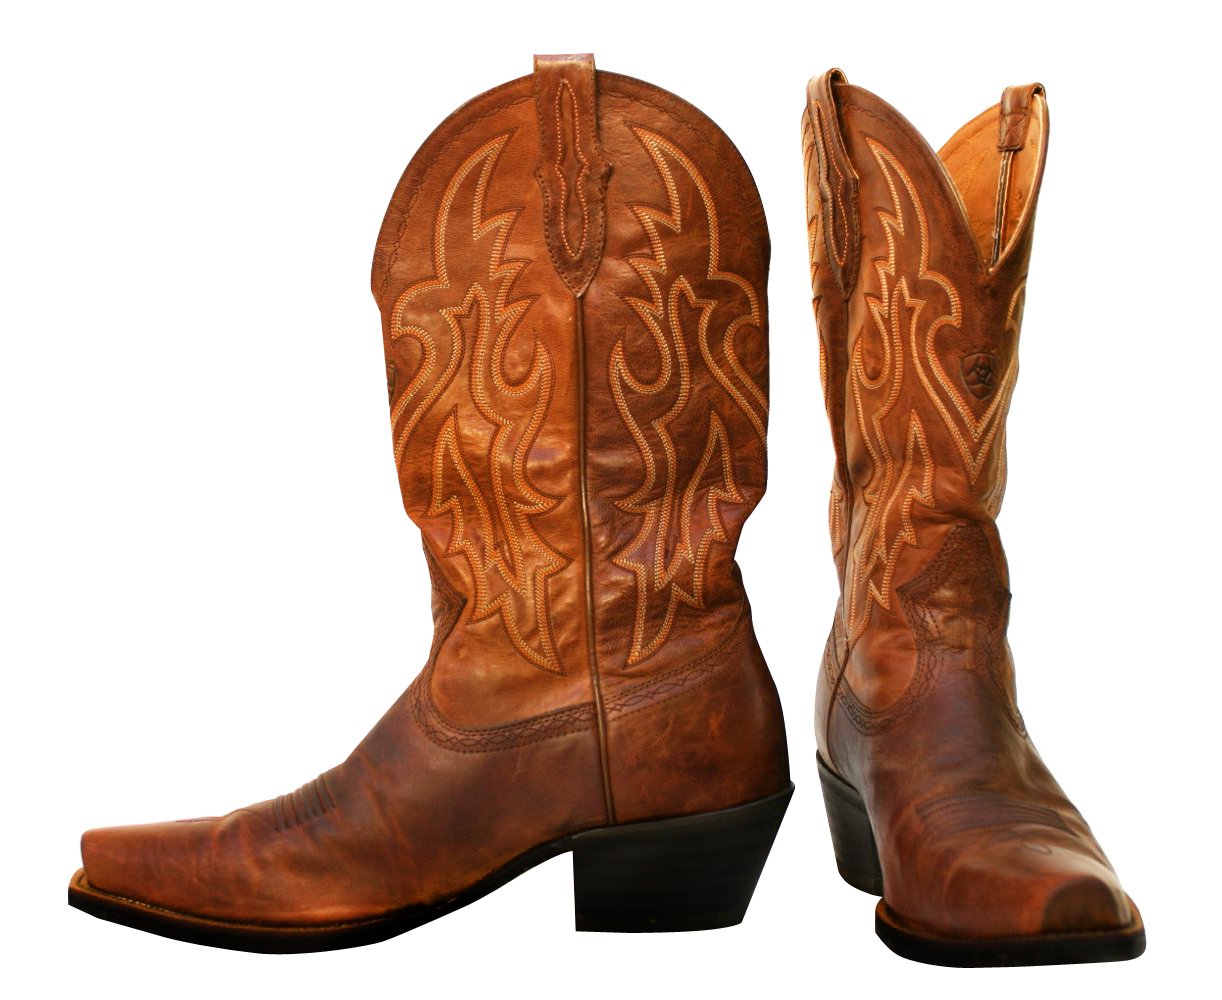 Png cowboy. Boots image aves cowboybootspngimage